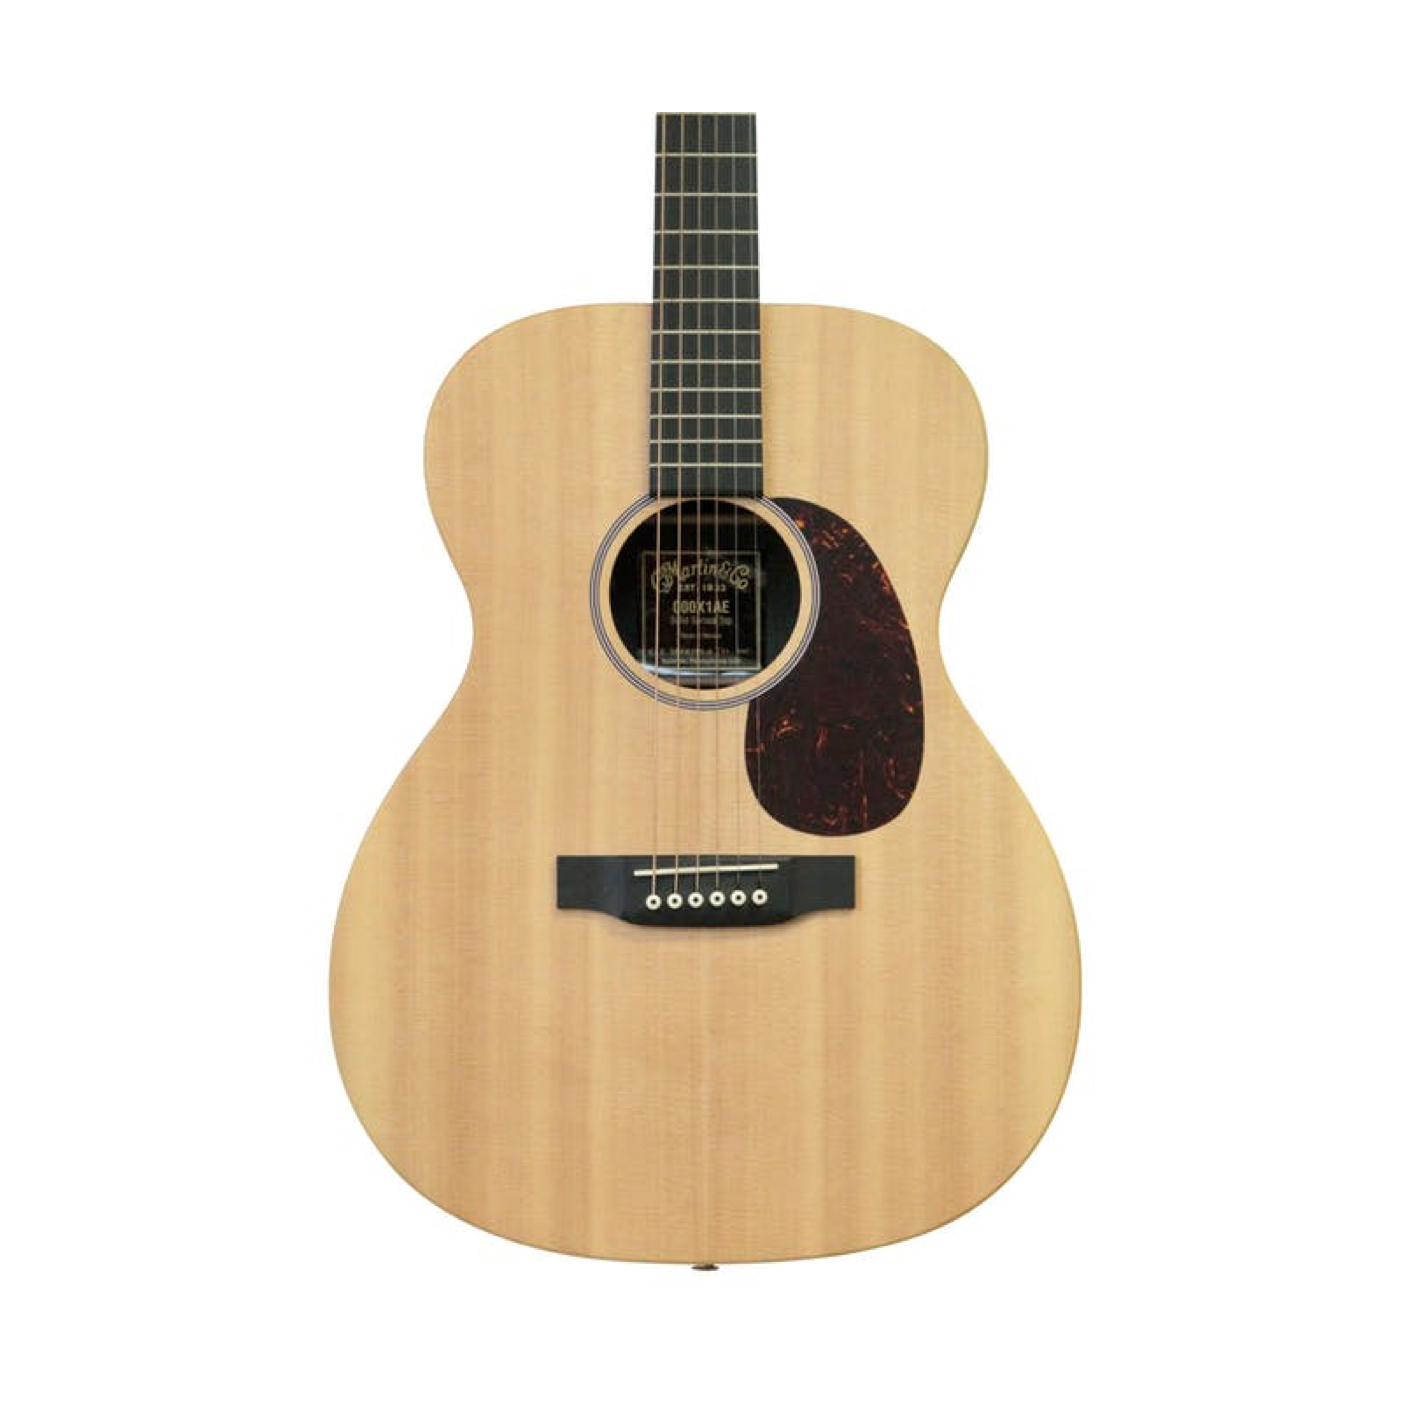 Martin OOOX1-AE Electro Acoustic